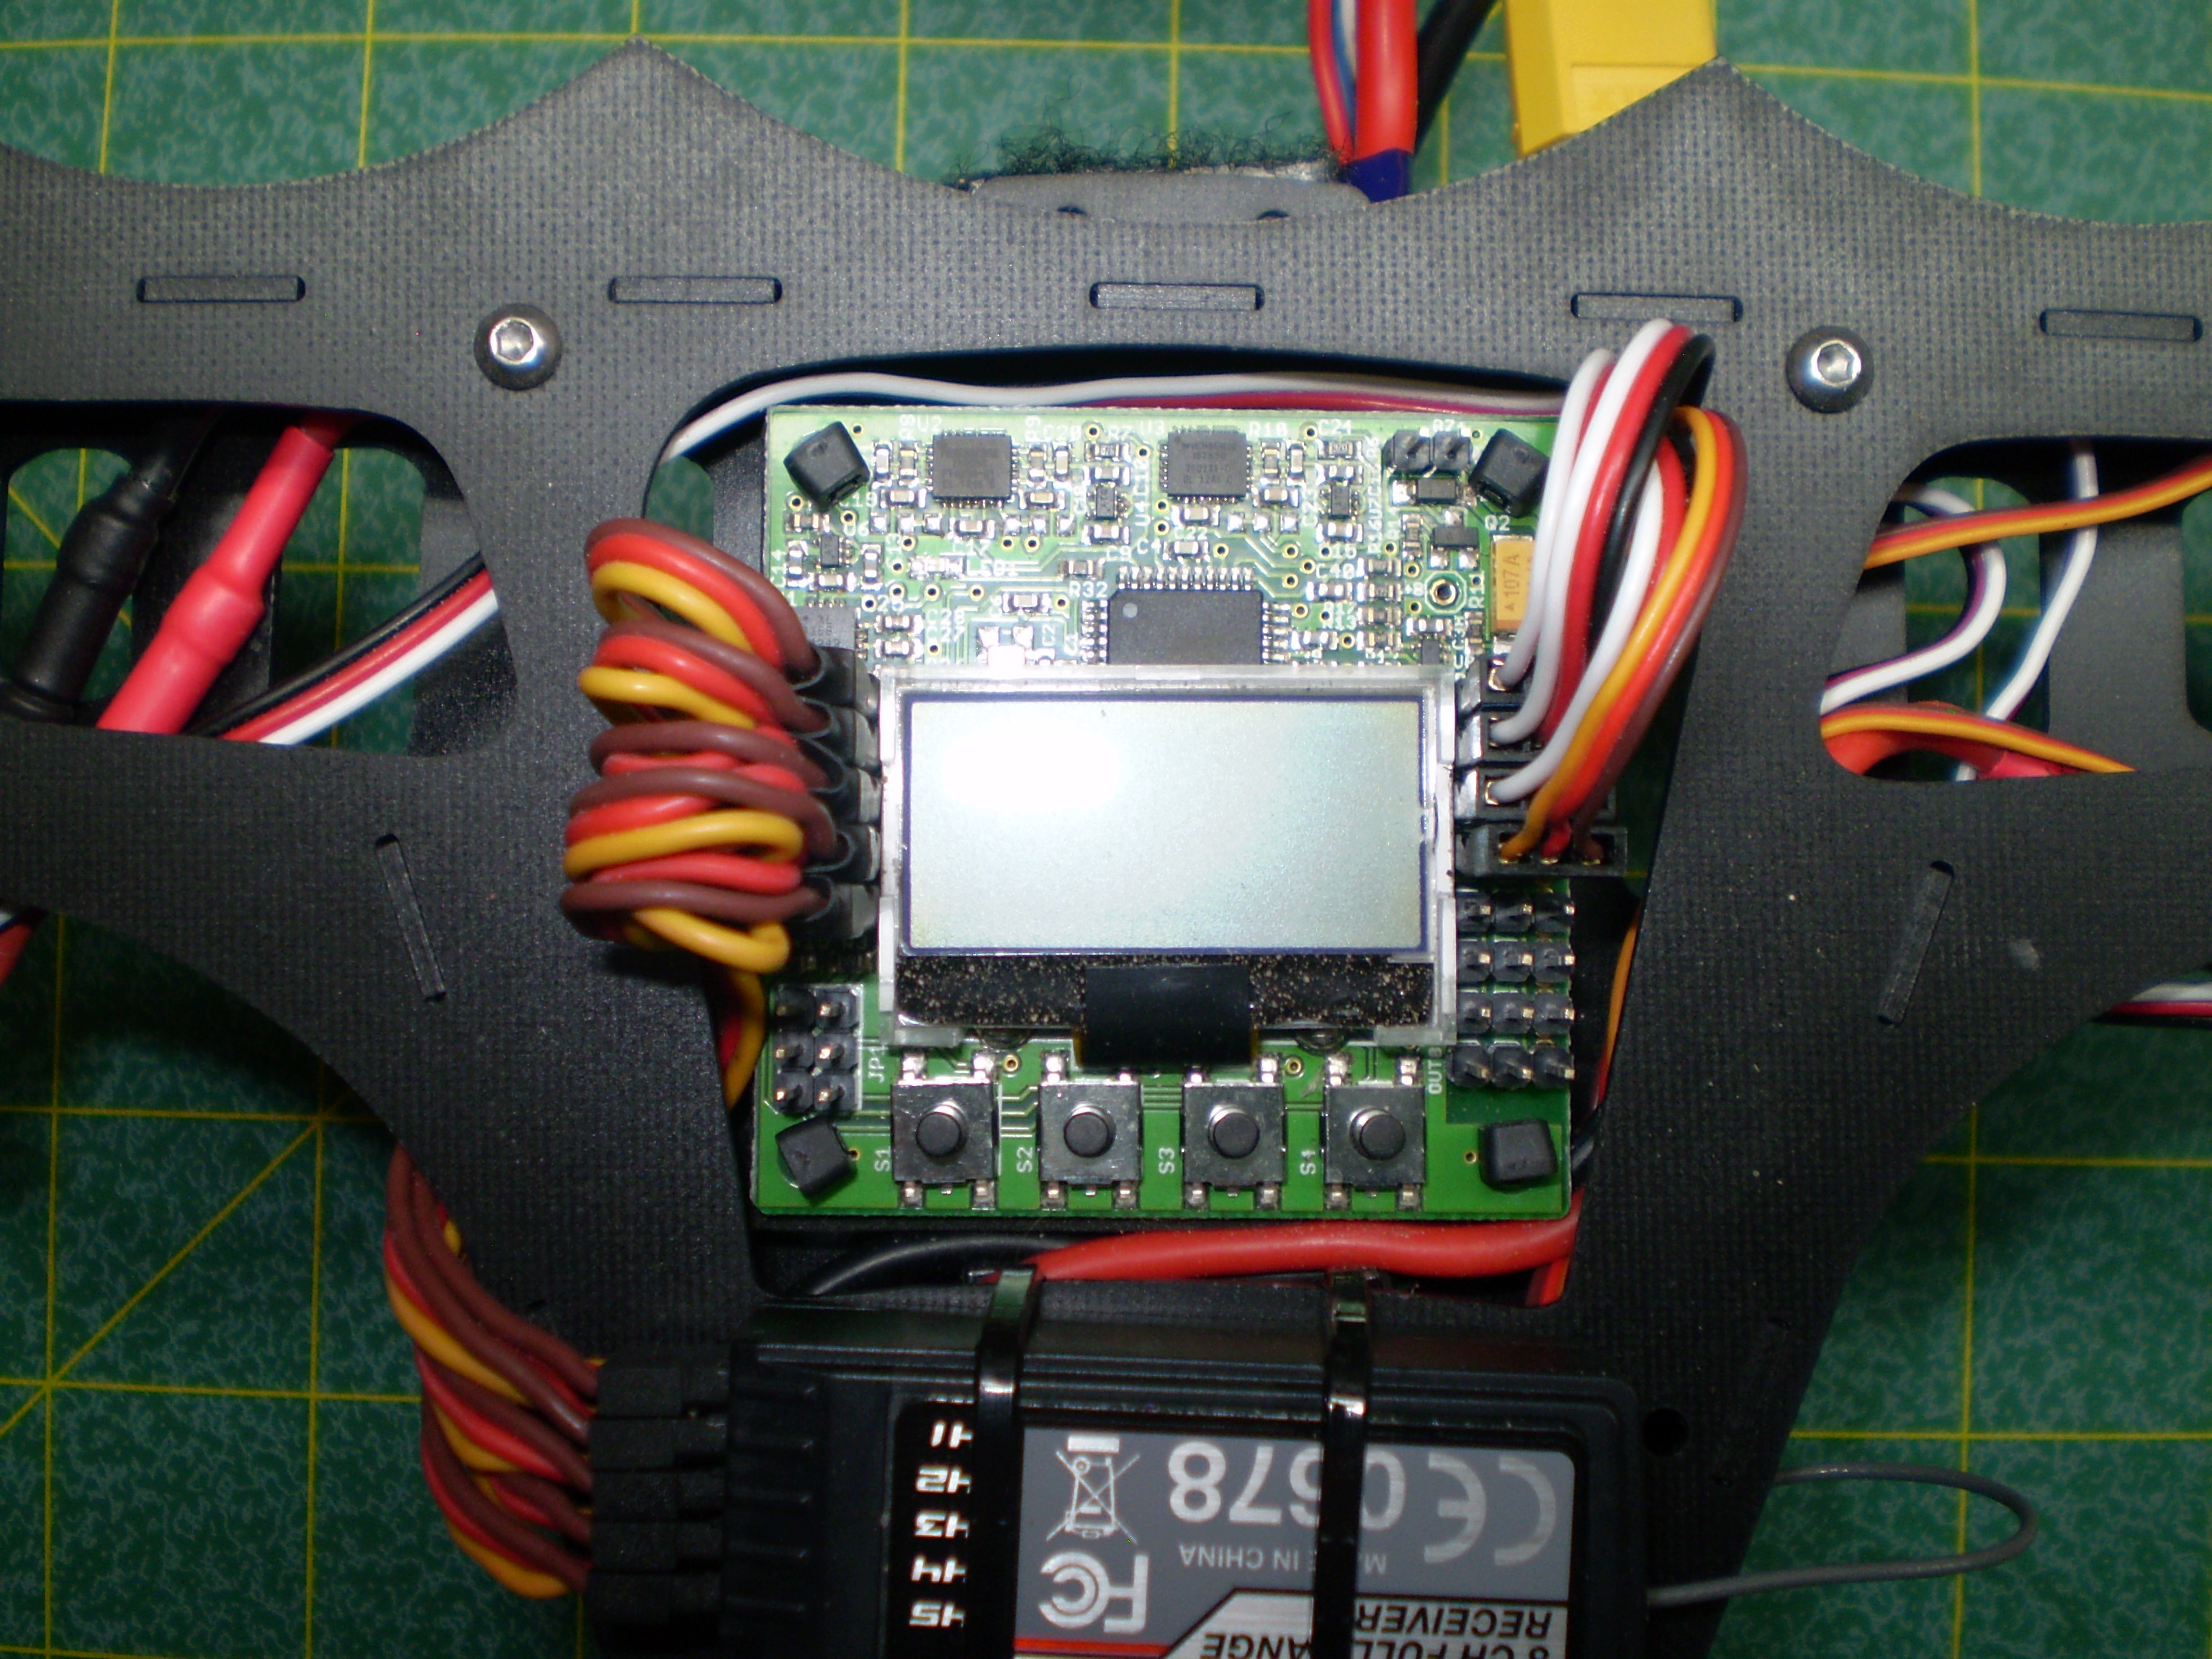 Kk2 15 Wiring Diagram Libraries Flight Controller Orangerx Libraryin This Setup The Power Harness Connects Battery To